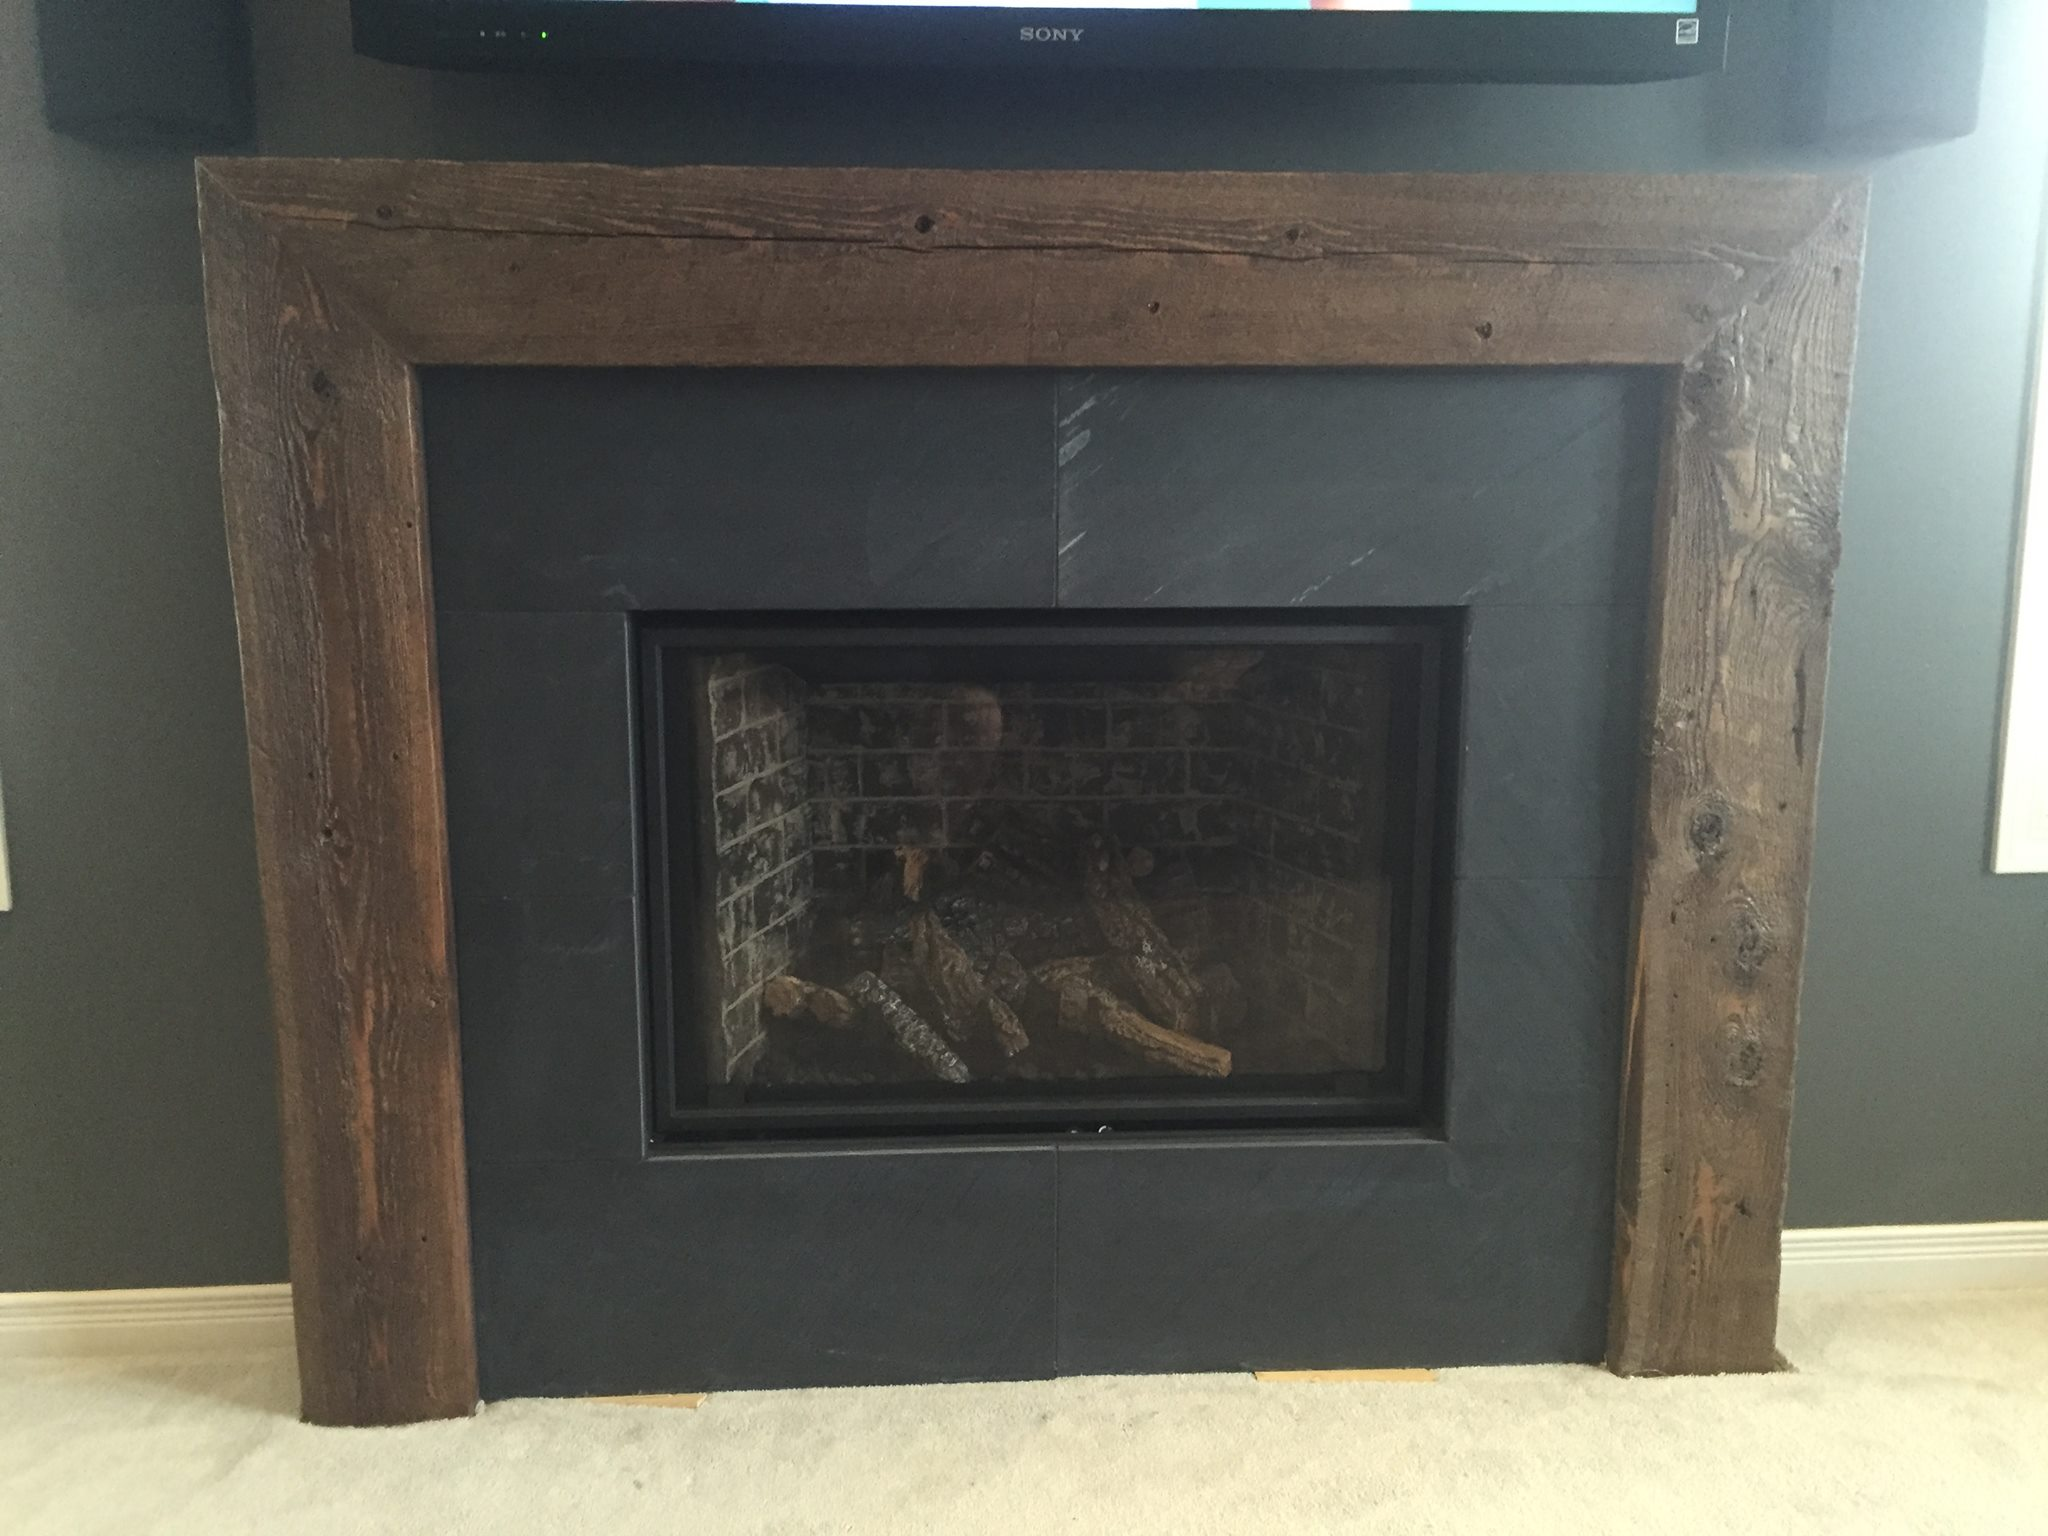 sided l services new edge black inspire chrome fireplace fs valor ho liner greenfield trim